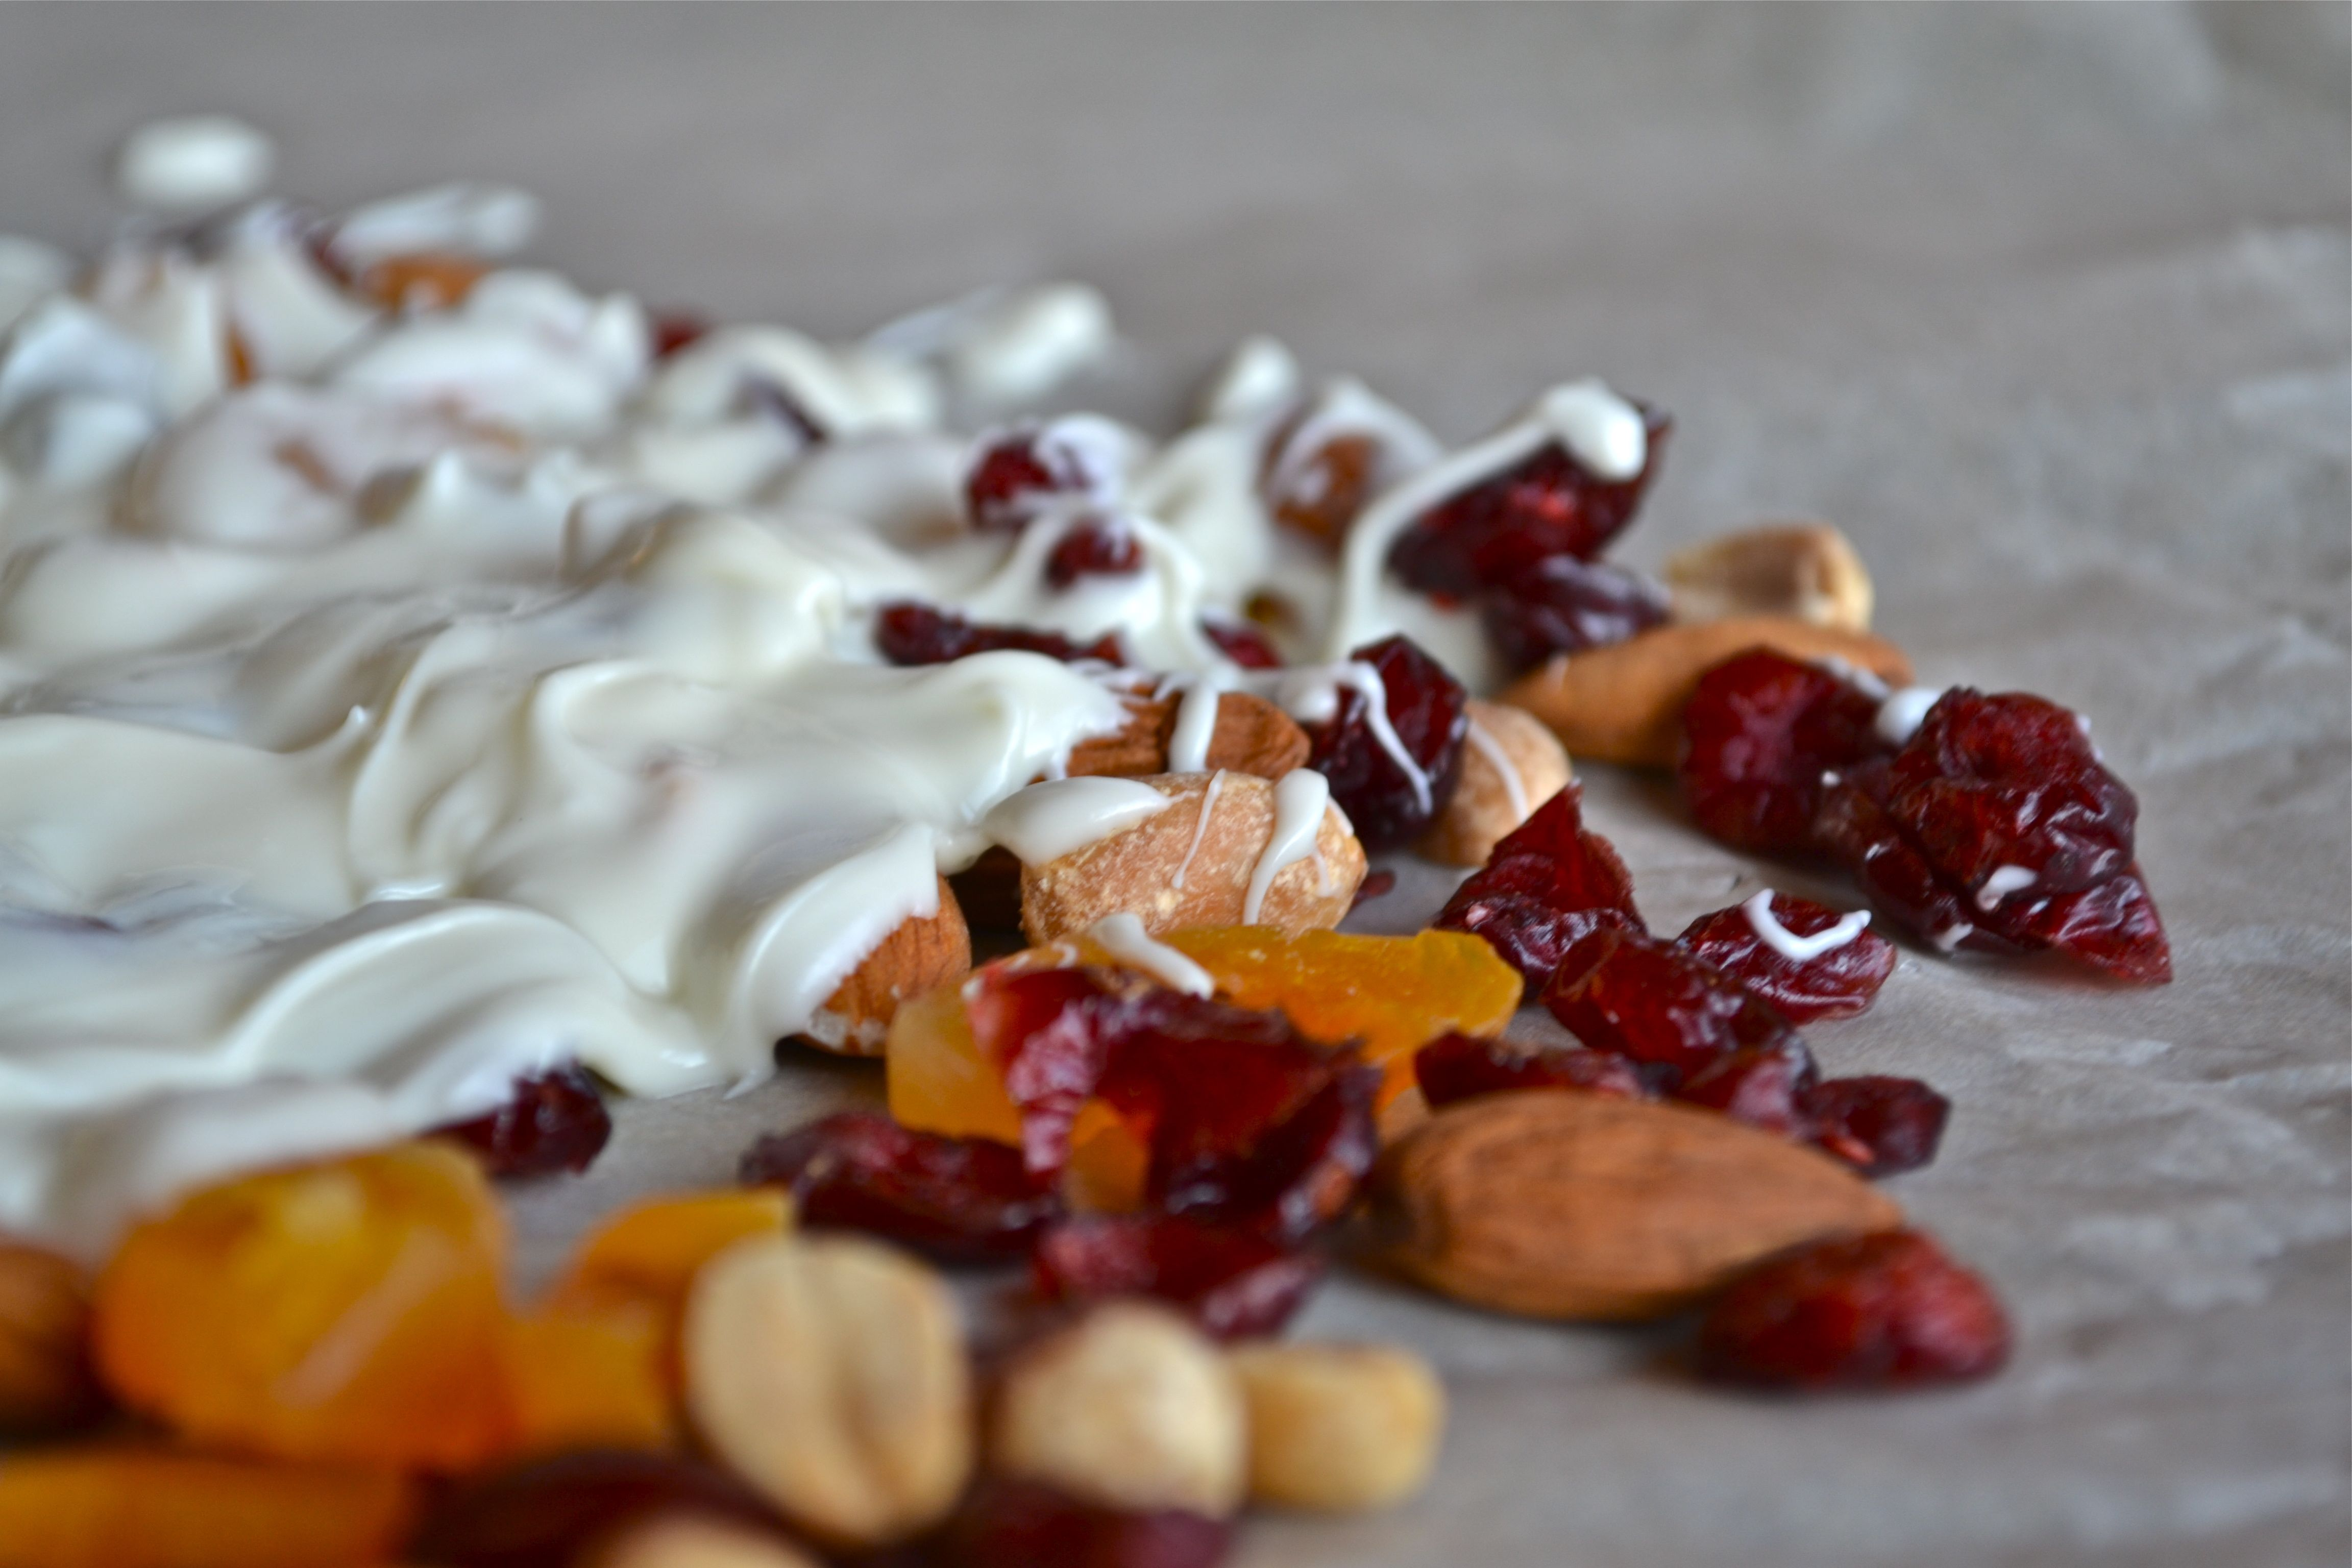 More #CranberryLove: White Chocolate Cranberry and Nut Bark